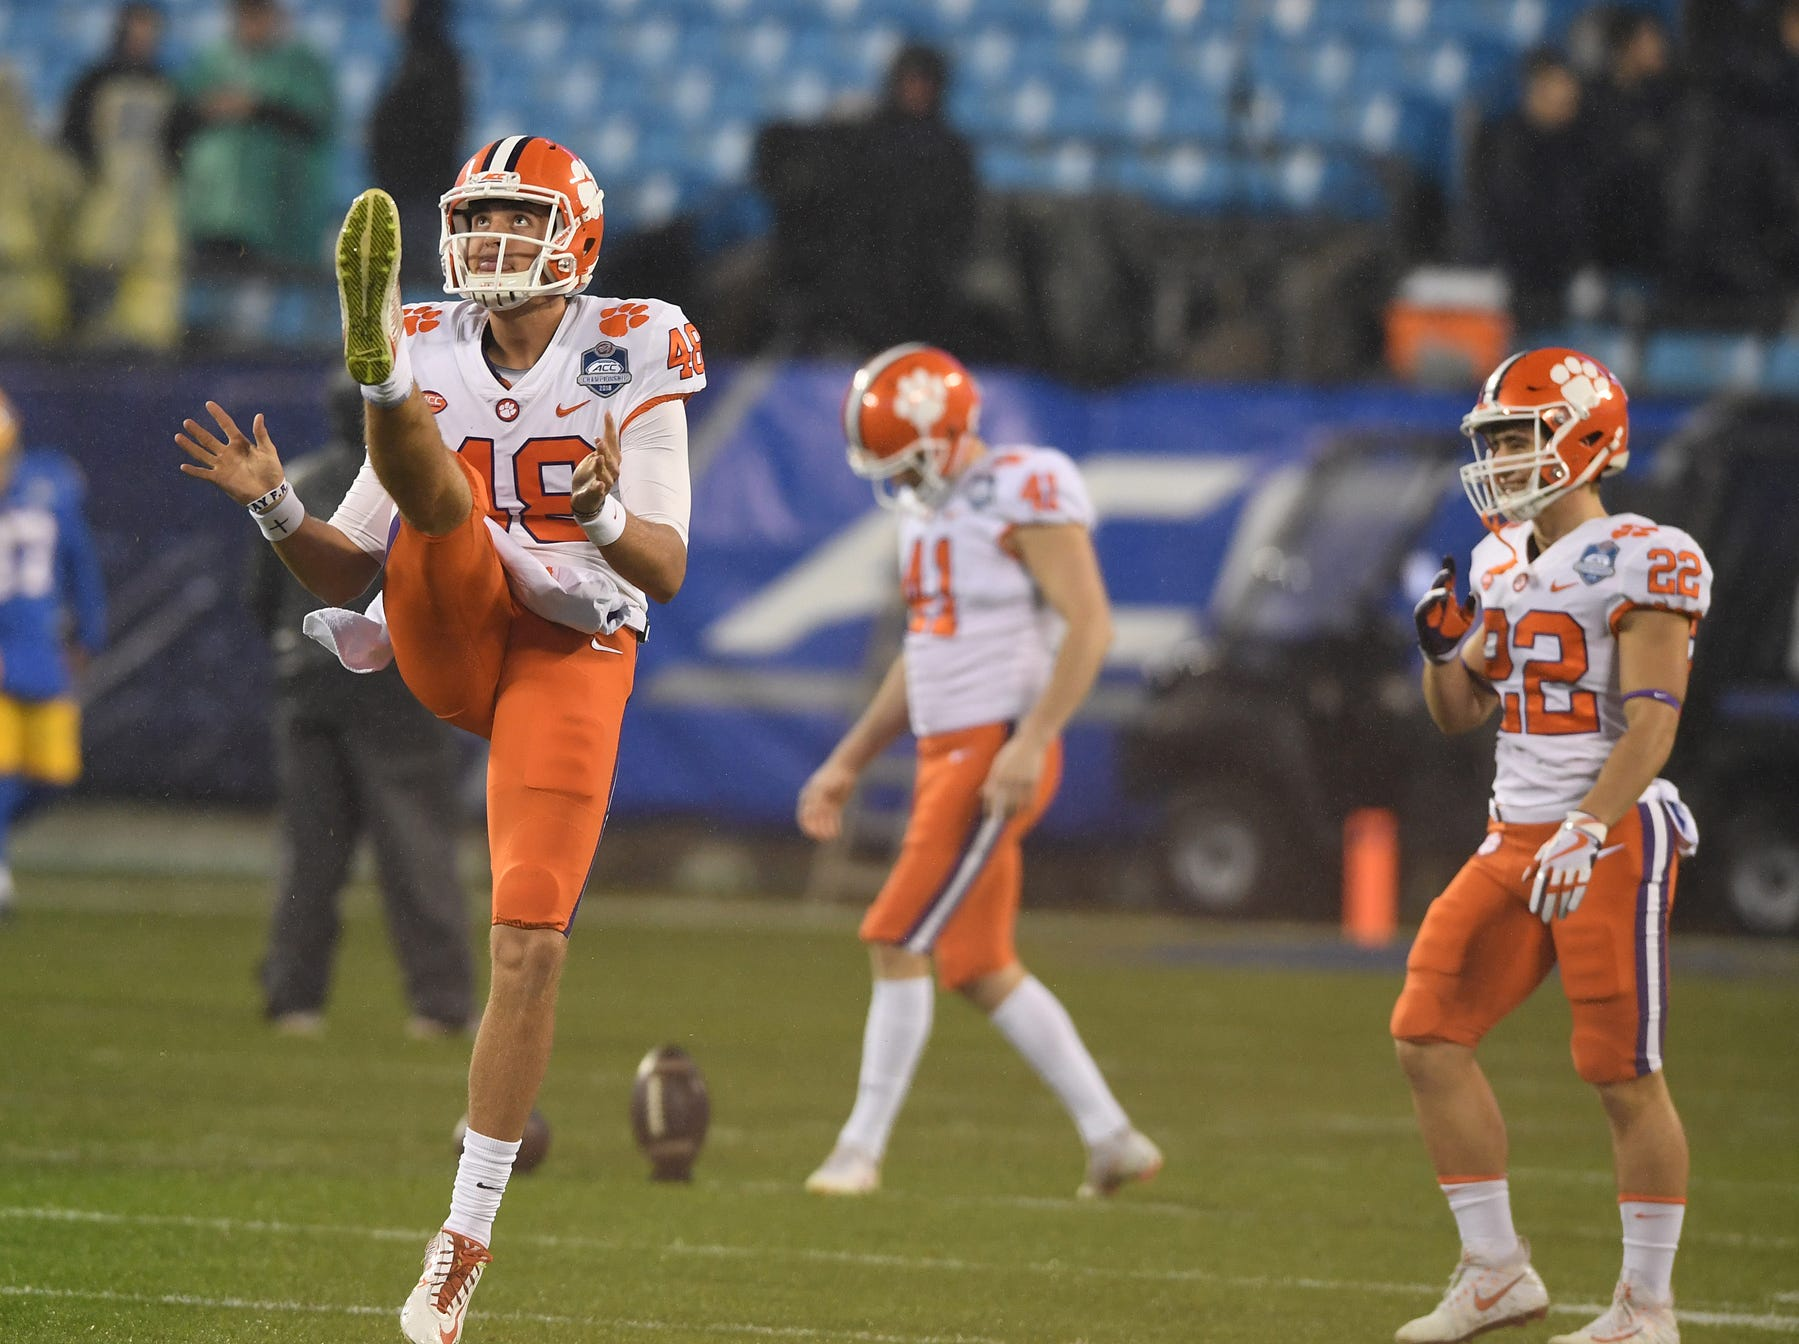 Clemson punter Will Spiers (48) kicks during pregame of the Dr. Pepper ACC Championship at Bank of America Stadium in Charlotte, N.C. Saturday, December 1, 2018.